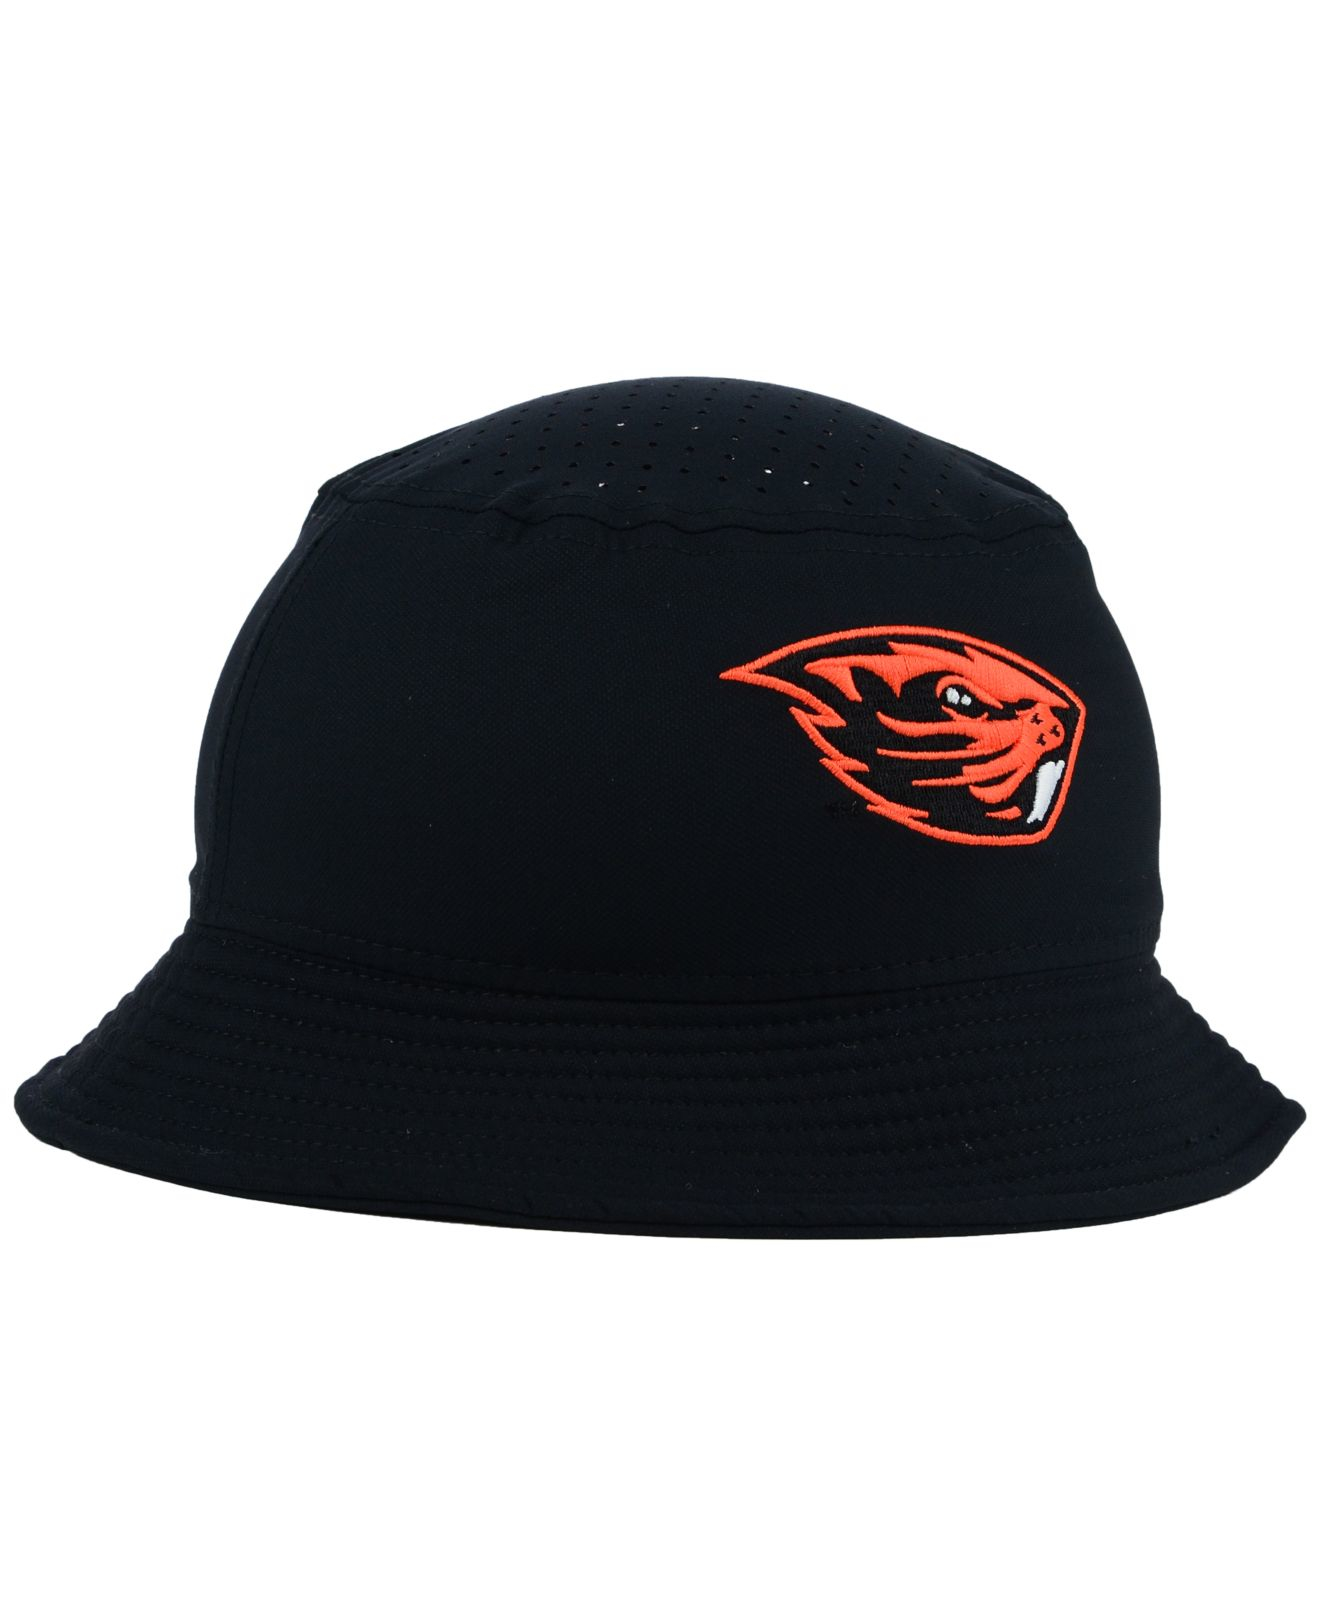 ... discount code for lyst nike oregon state beavers vapor bucket hat in  black for men f530d dbcd17299625